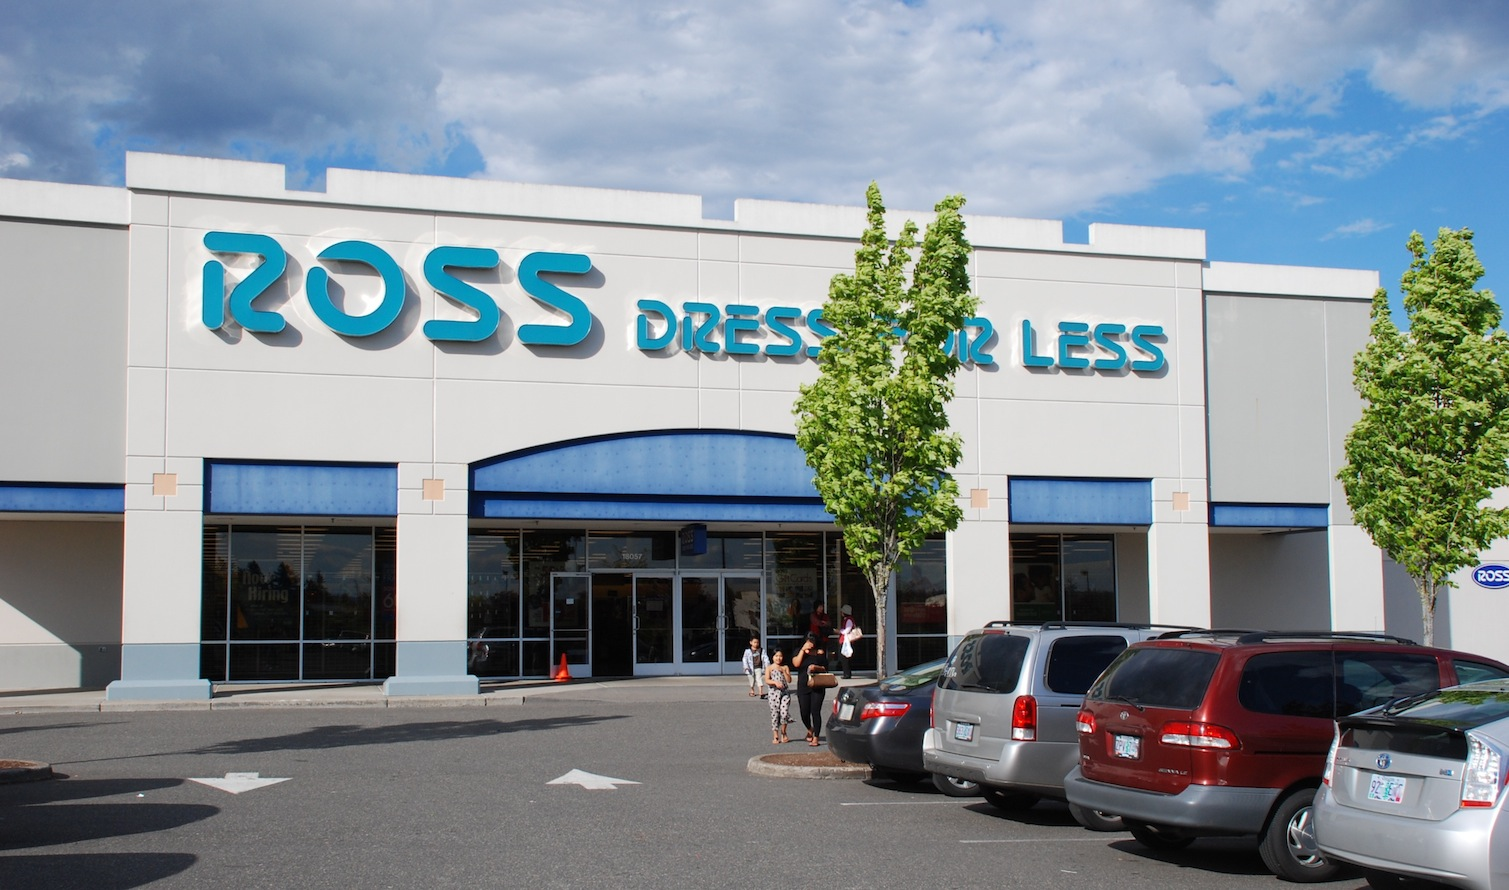 Ross clothing store locator